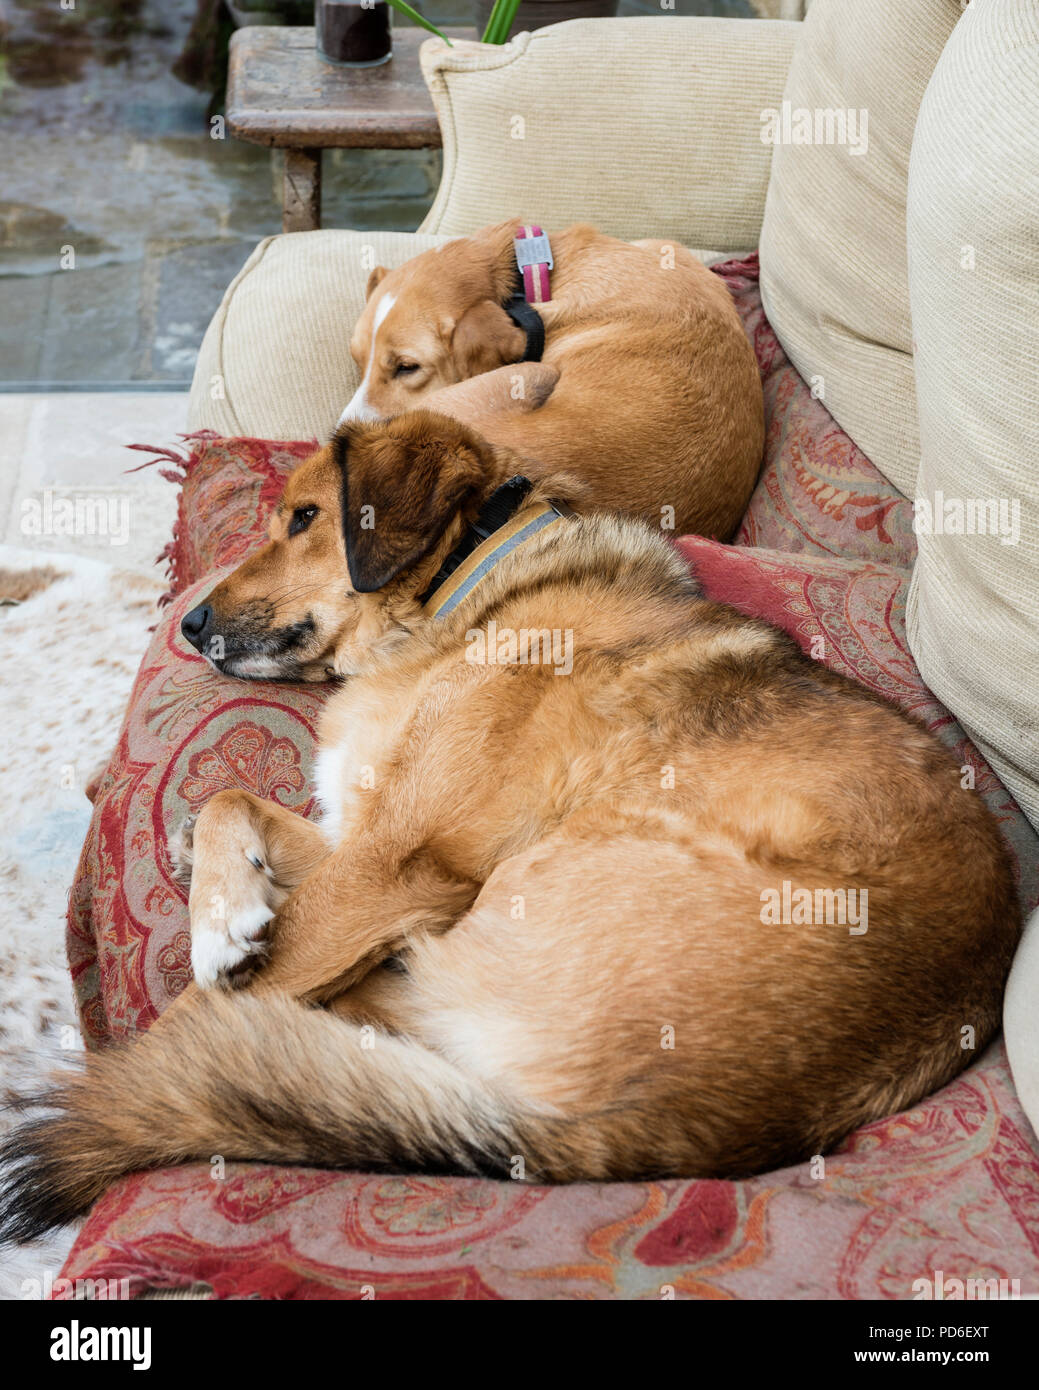 Two dogs curled up on farmhouse sofa - Stock Image